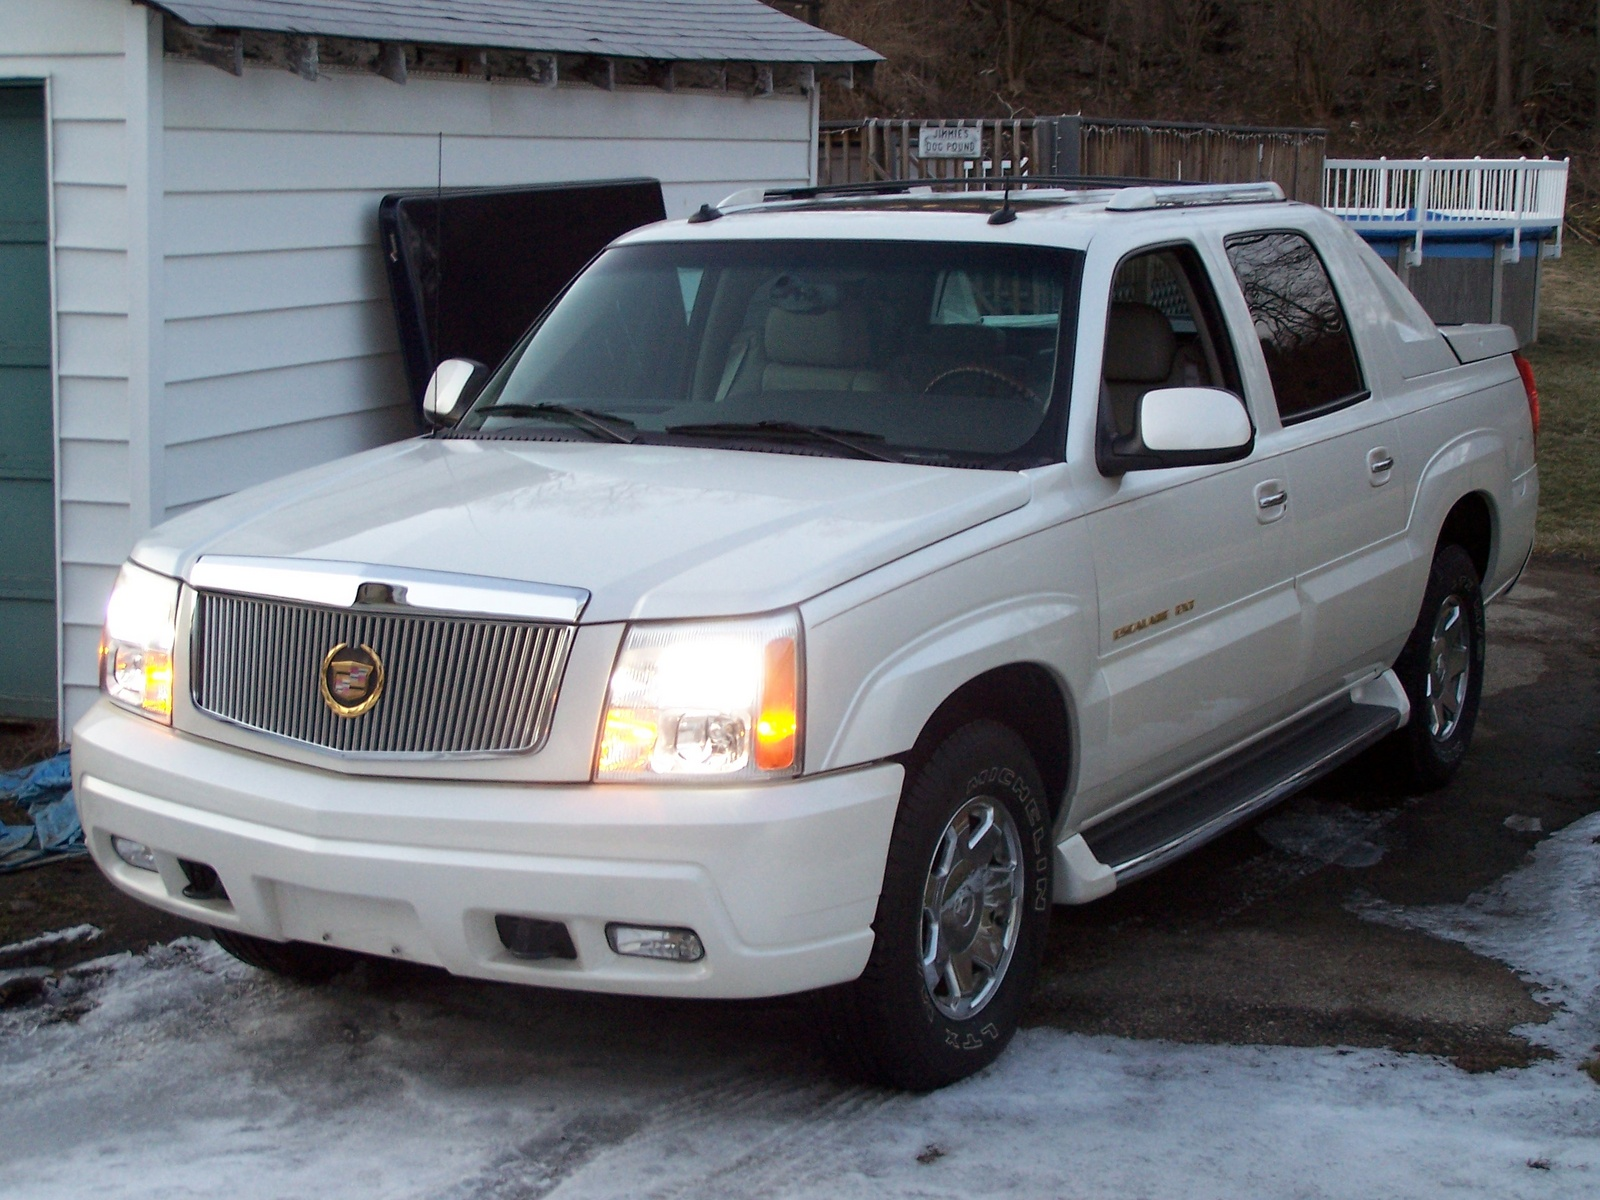 2003 Cadillac Escalade EXT AWD SB picture